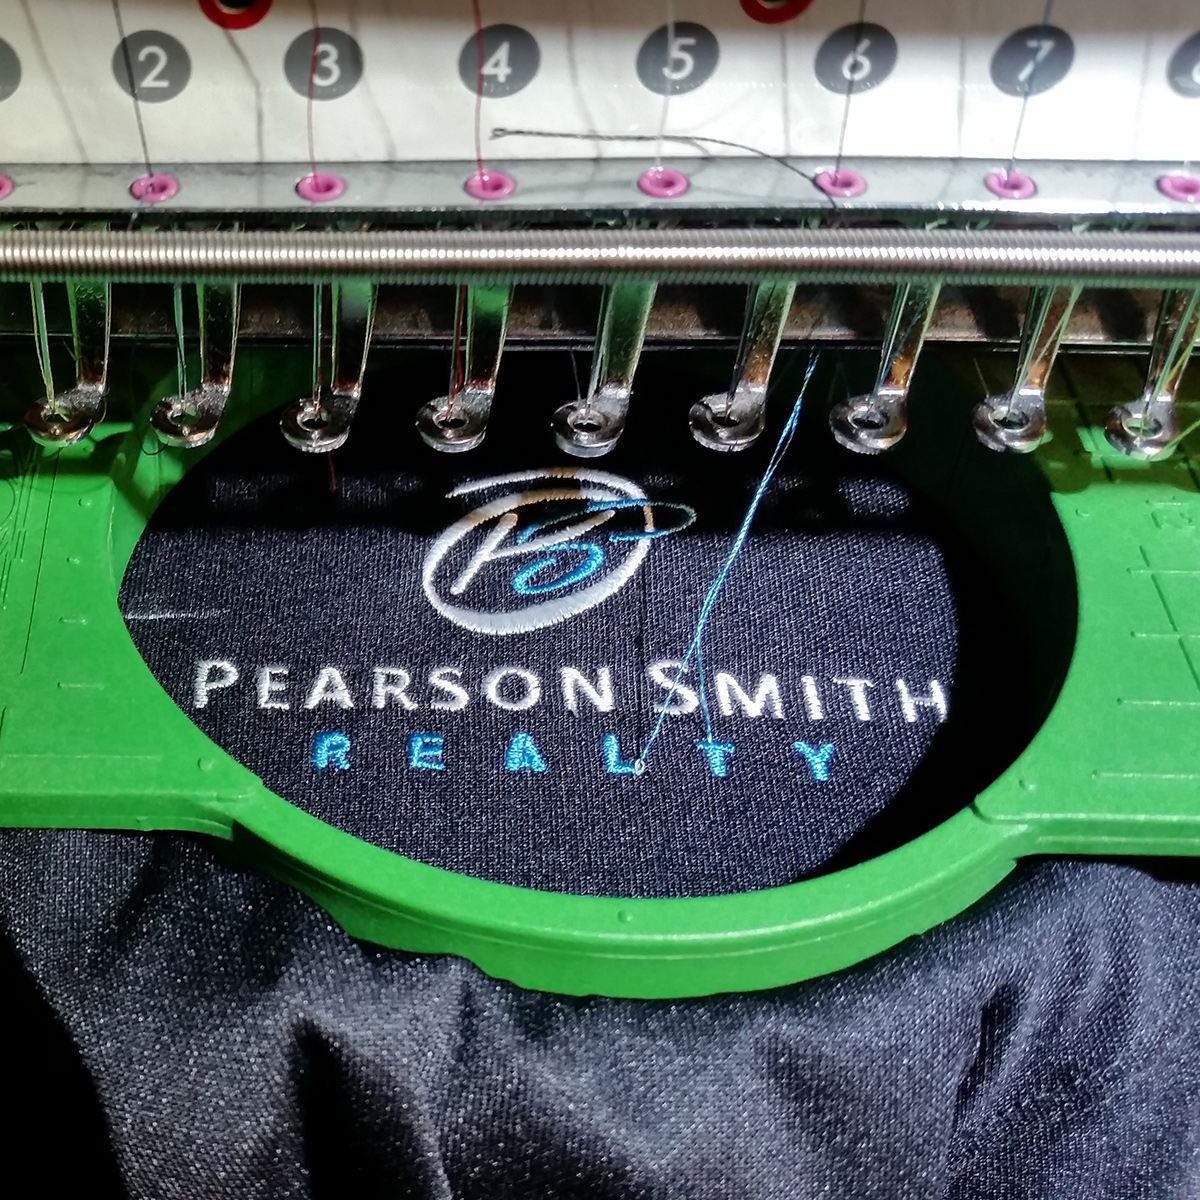 Pearson Smith Realty Stitching In Process